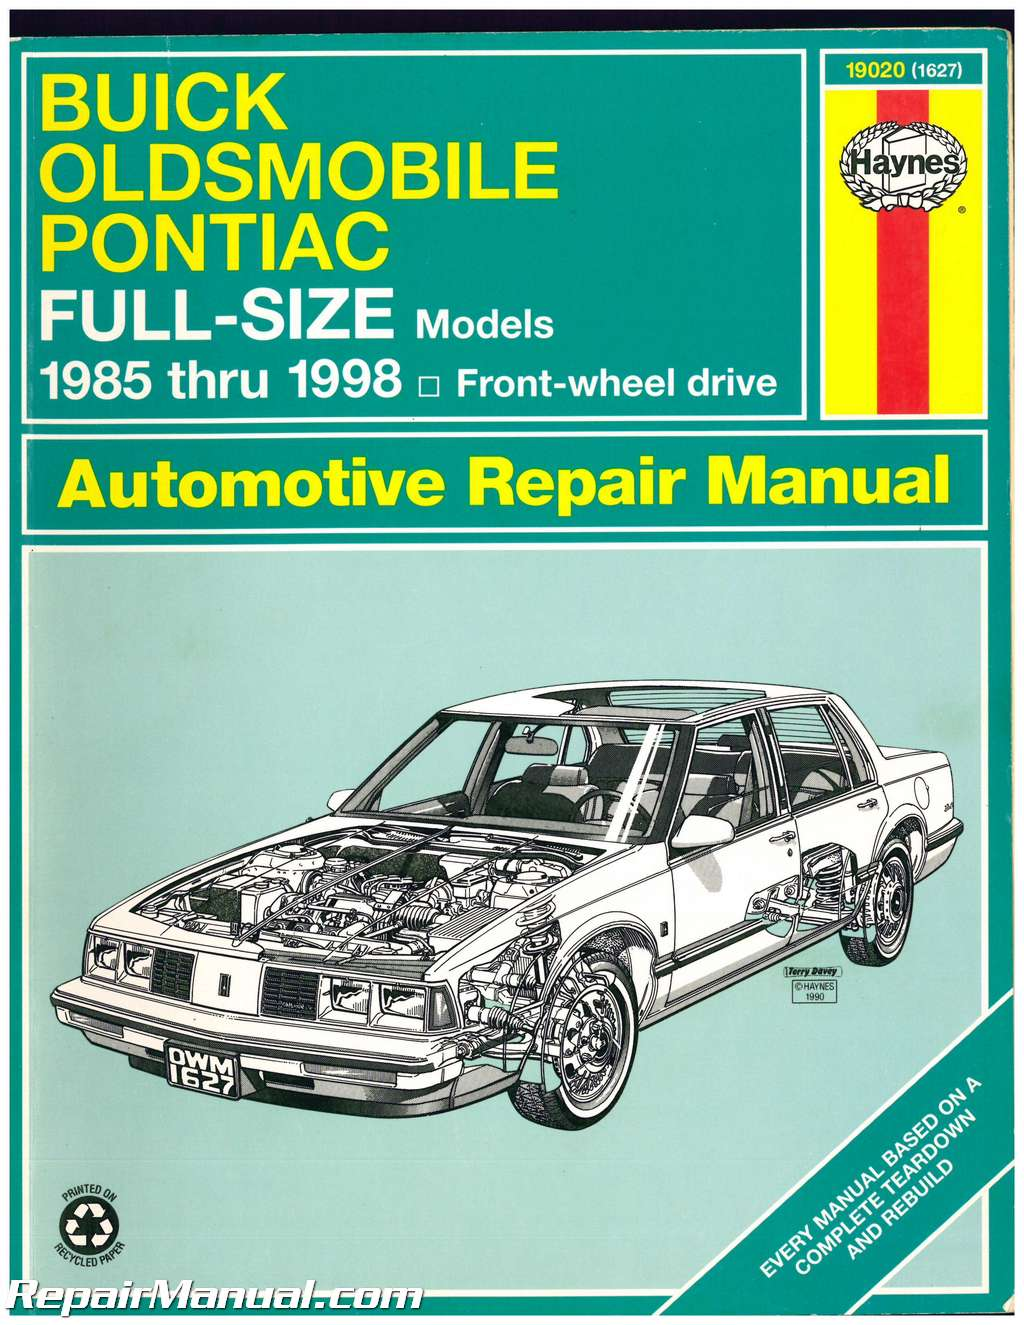 service manual free online auto service manuals 1986. Black Bedroom Furniture Sets. Home Design Ideas